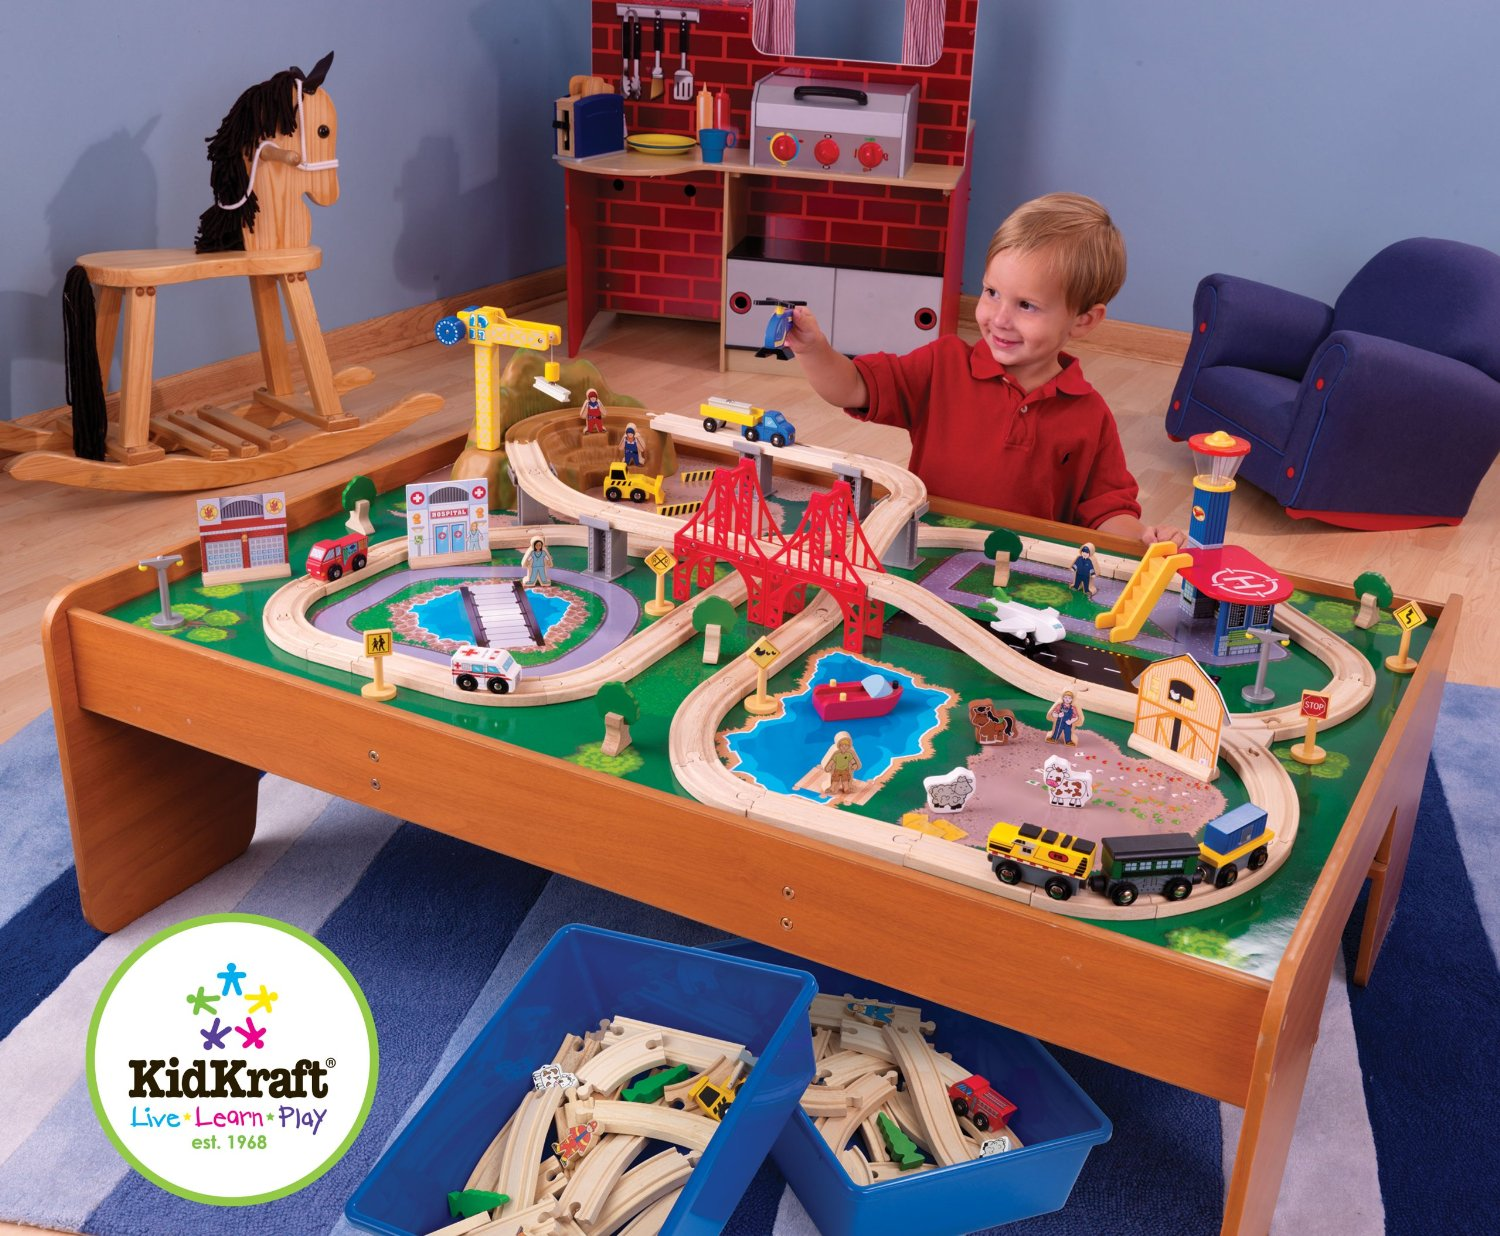 106 99 Kidkraft Ride Around Town Train Set Table Round Designs  sc 1 st  Adobe Title & Kidkraft Ride Around Train Set And Table Instructions - Round Designs